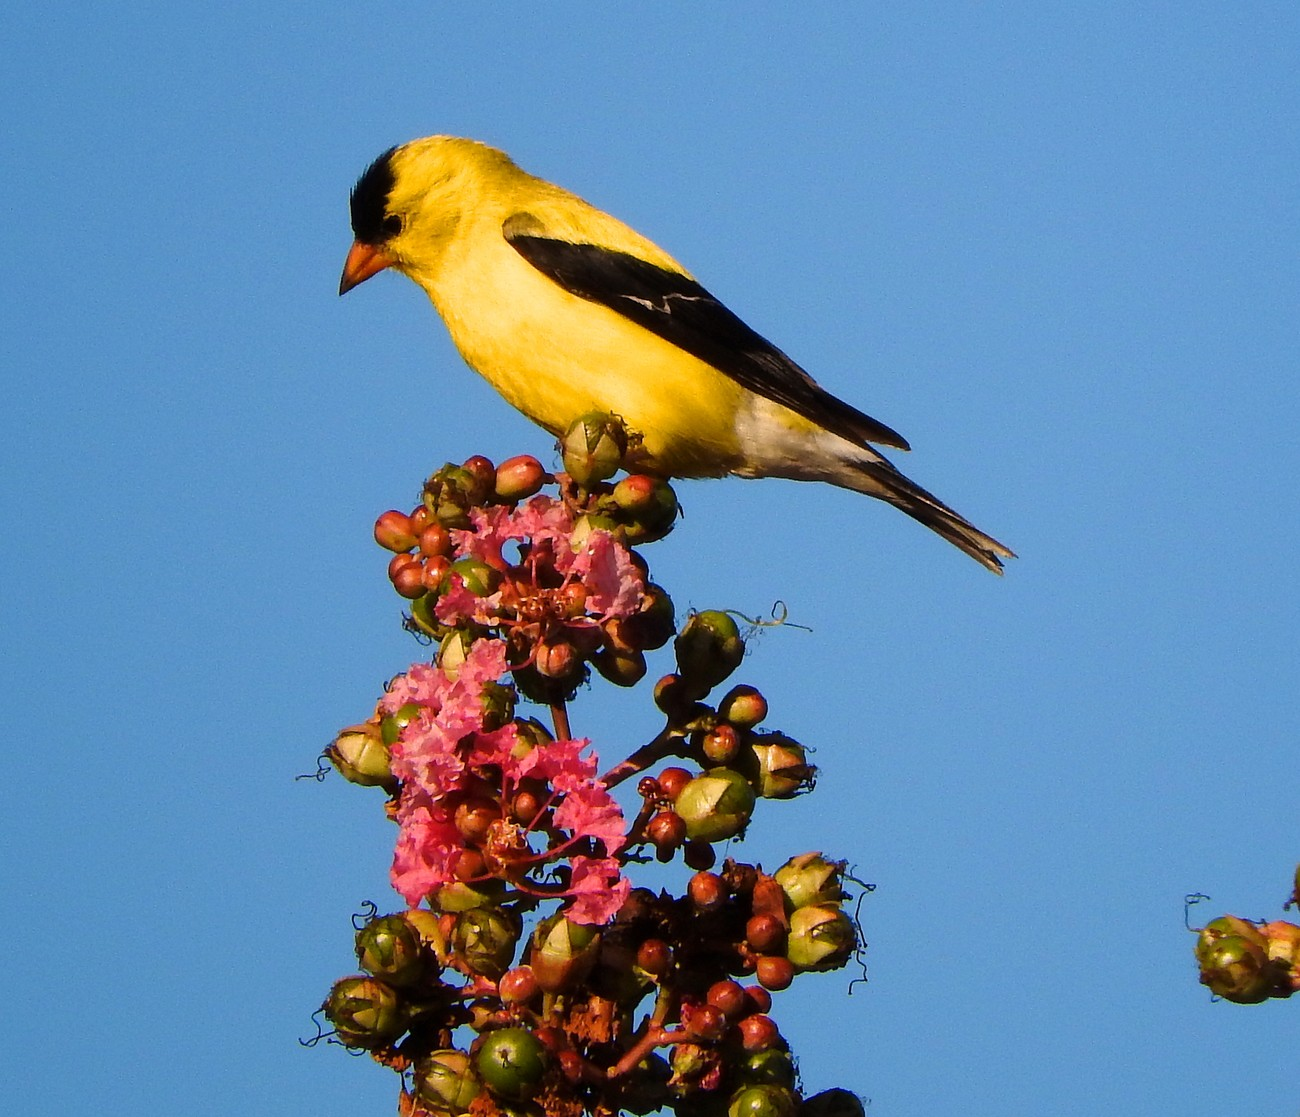 Male Goldfinch atop the Crape Myrtle